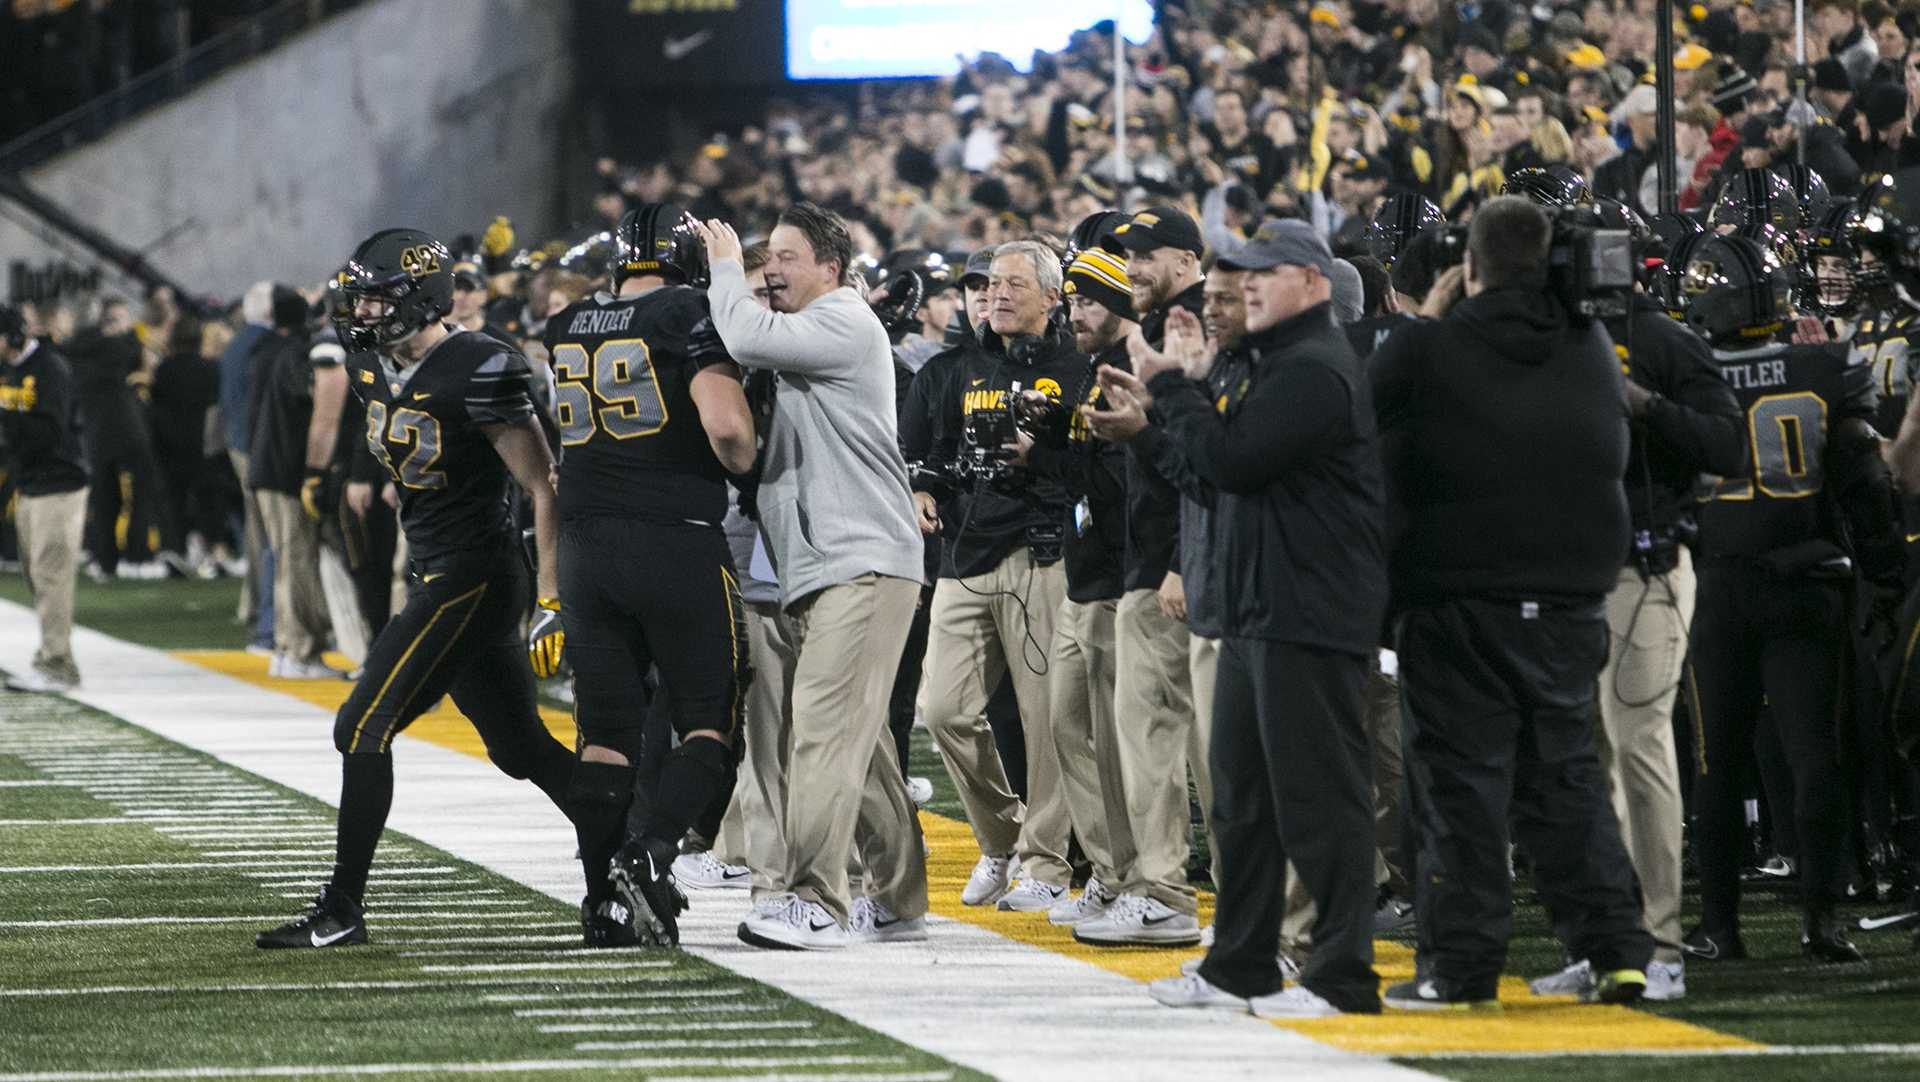 Iowa offensive coordinator Brian Ferentz celebrates with Keegan Render during the Iowa/Ohio State football game in Kinnick Stadium on Saturday, Nov. 4, 2017. The Hawkeyes defeated the Buckeyes in a storming fashion, 55-24. (Joseph Cress/The Daily Iowan)